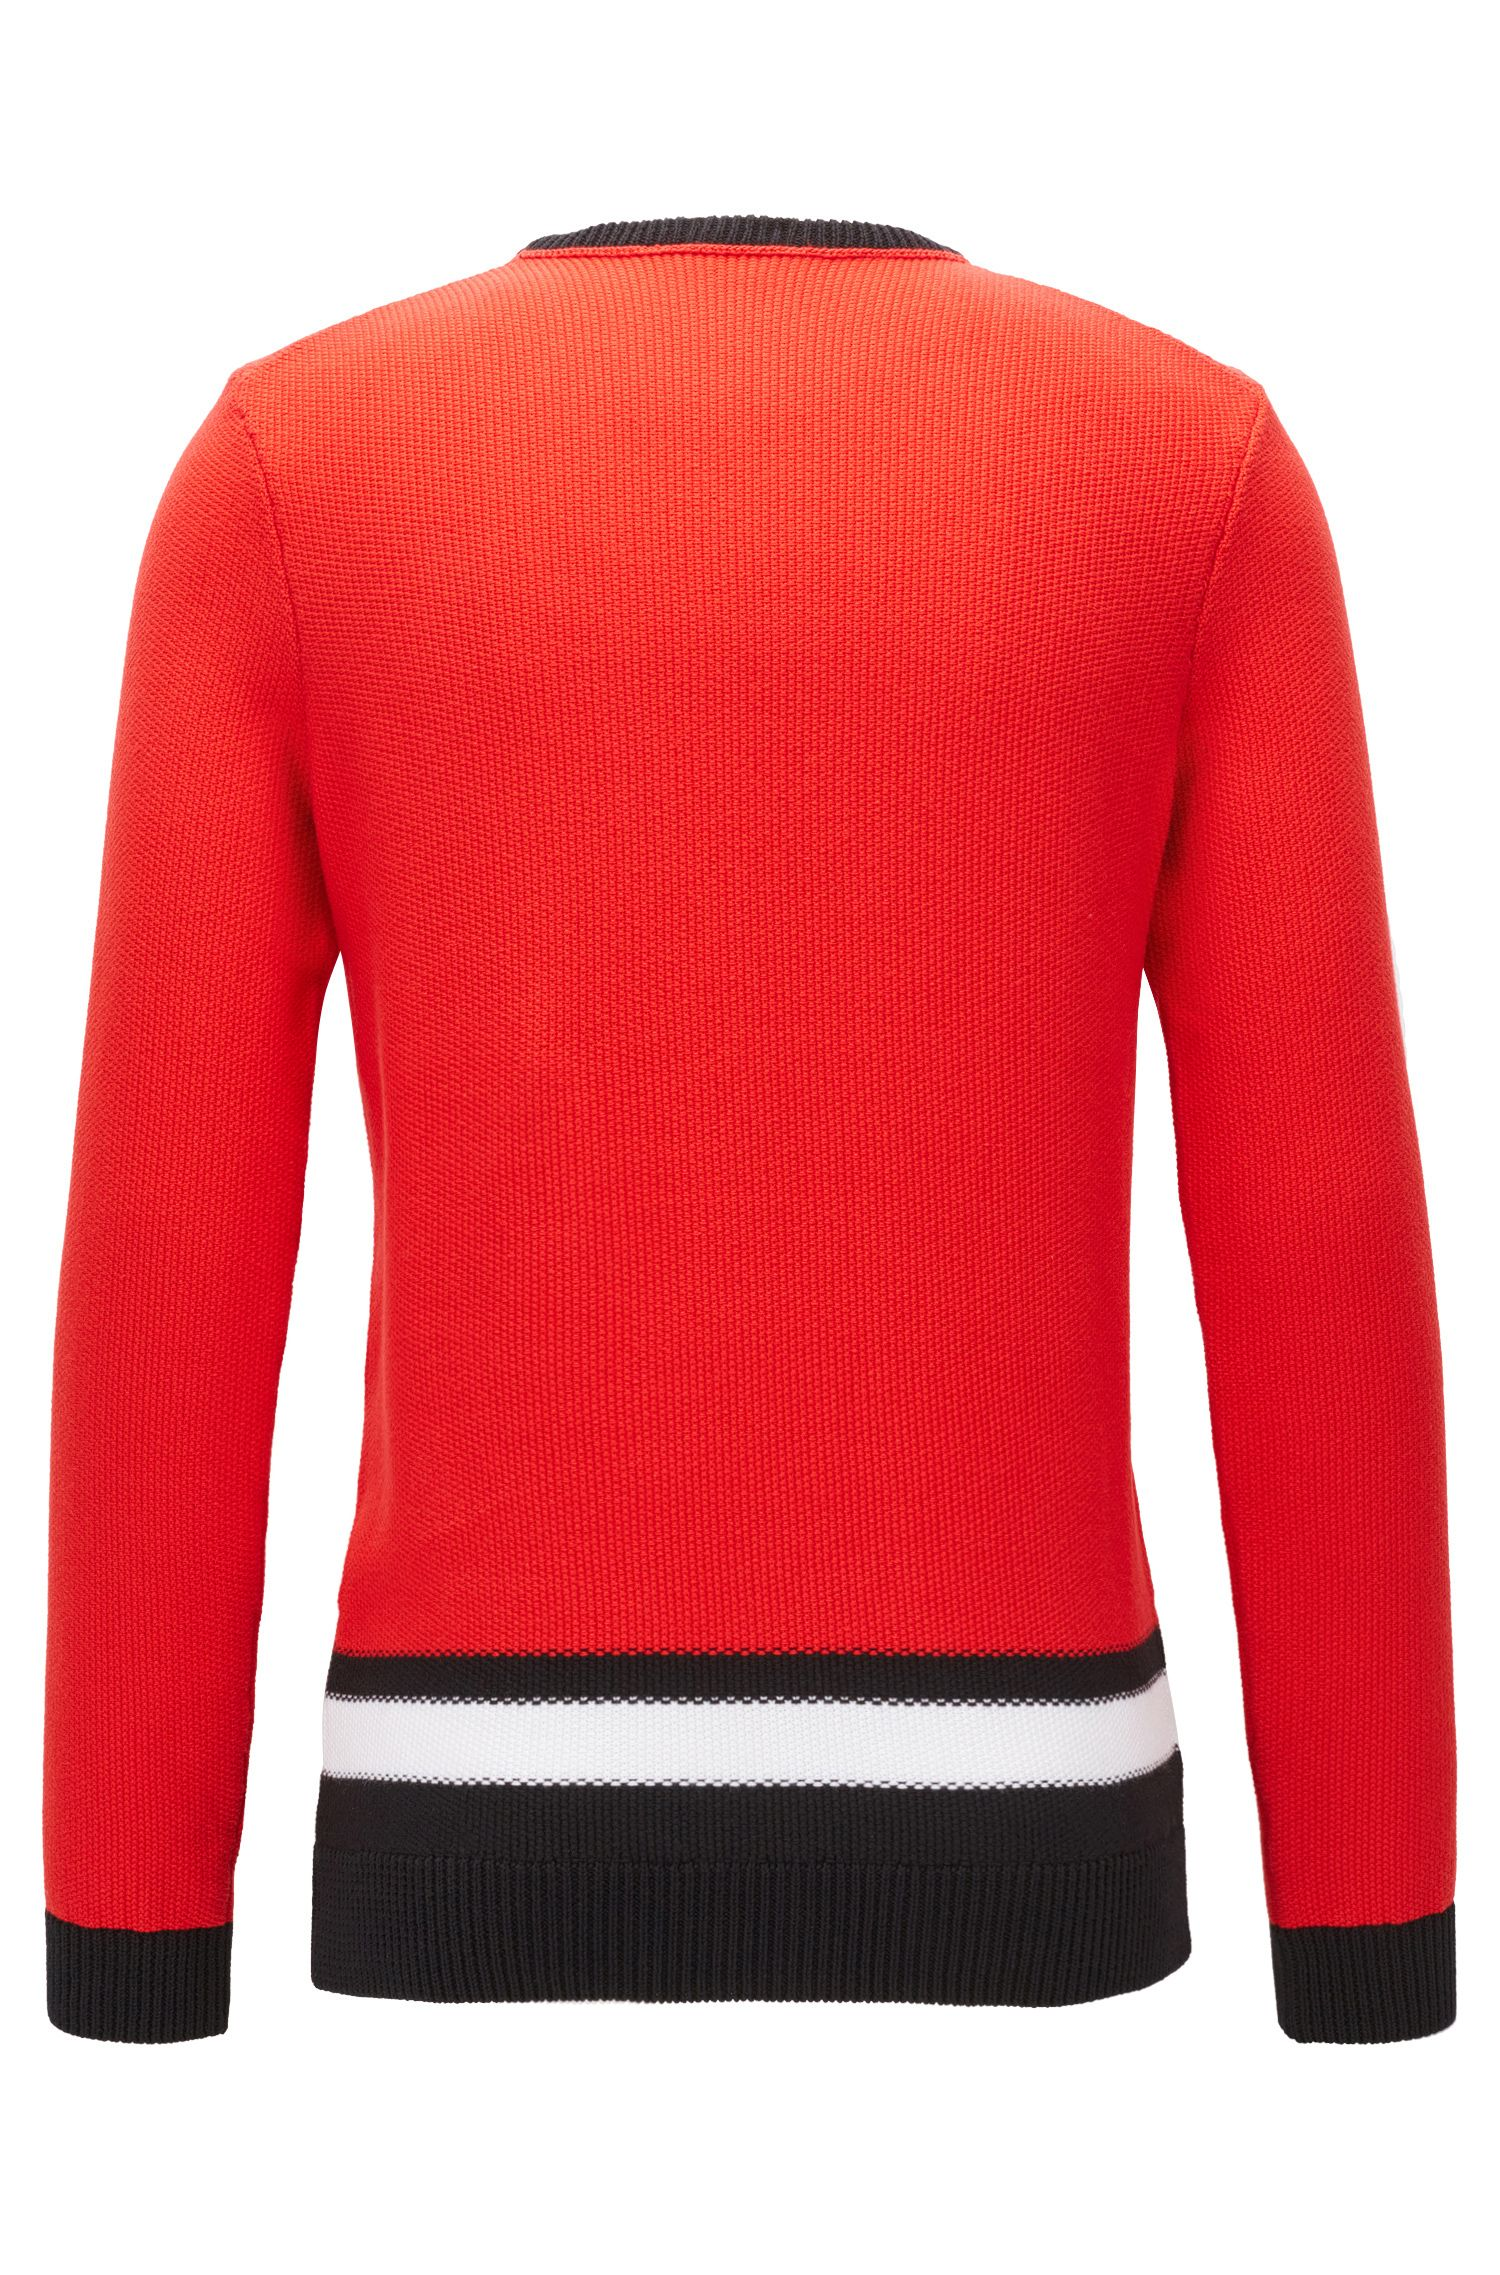 Colorblocked Cotton Sweater | Pagino, Red